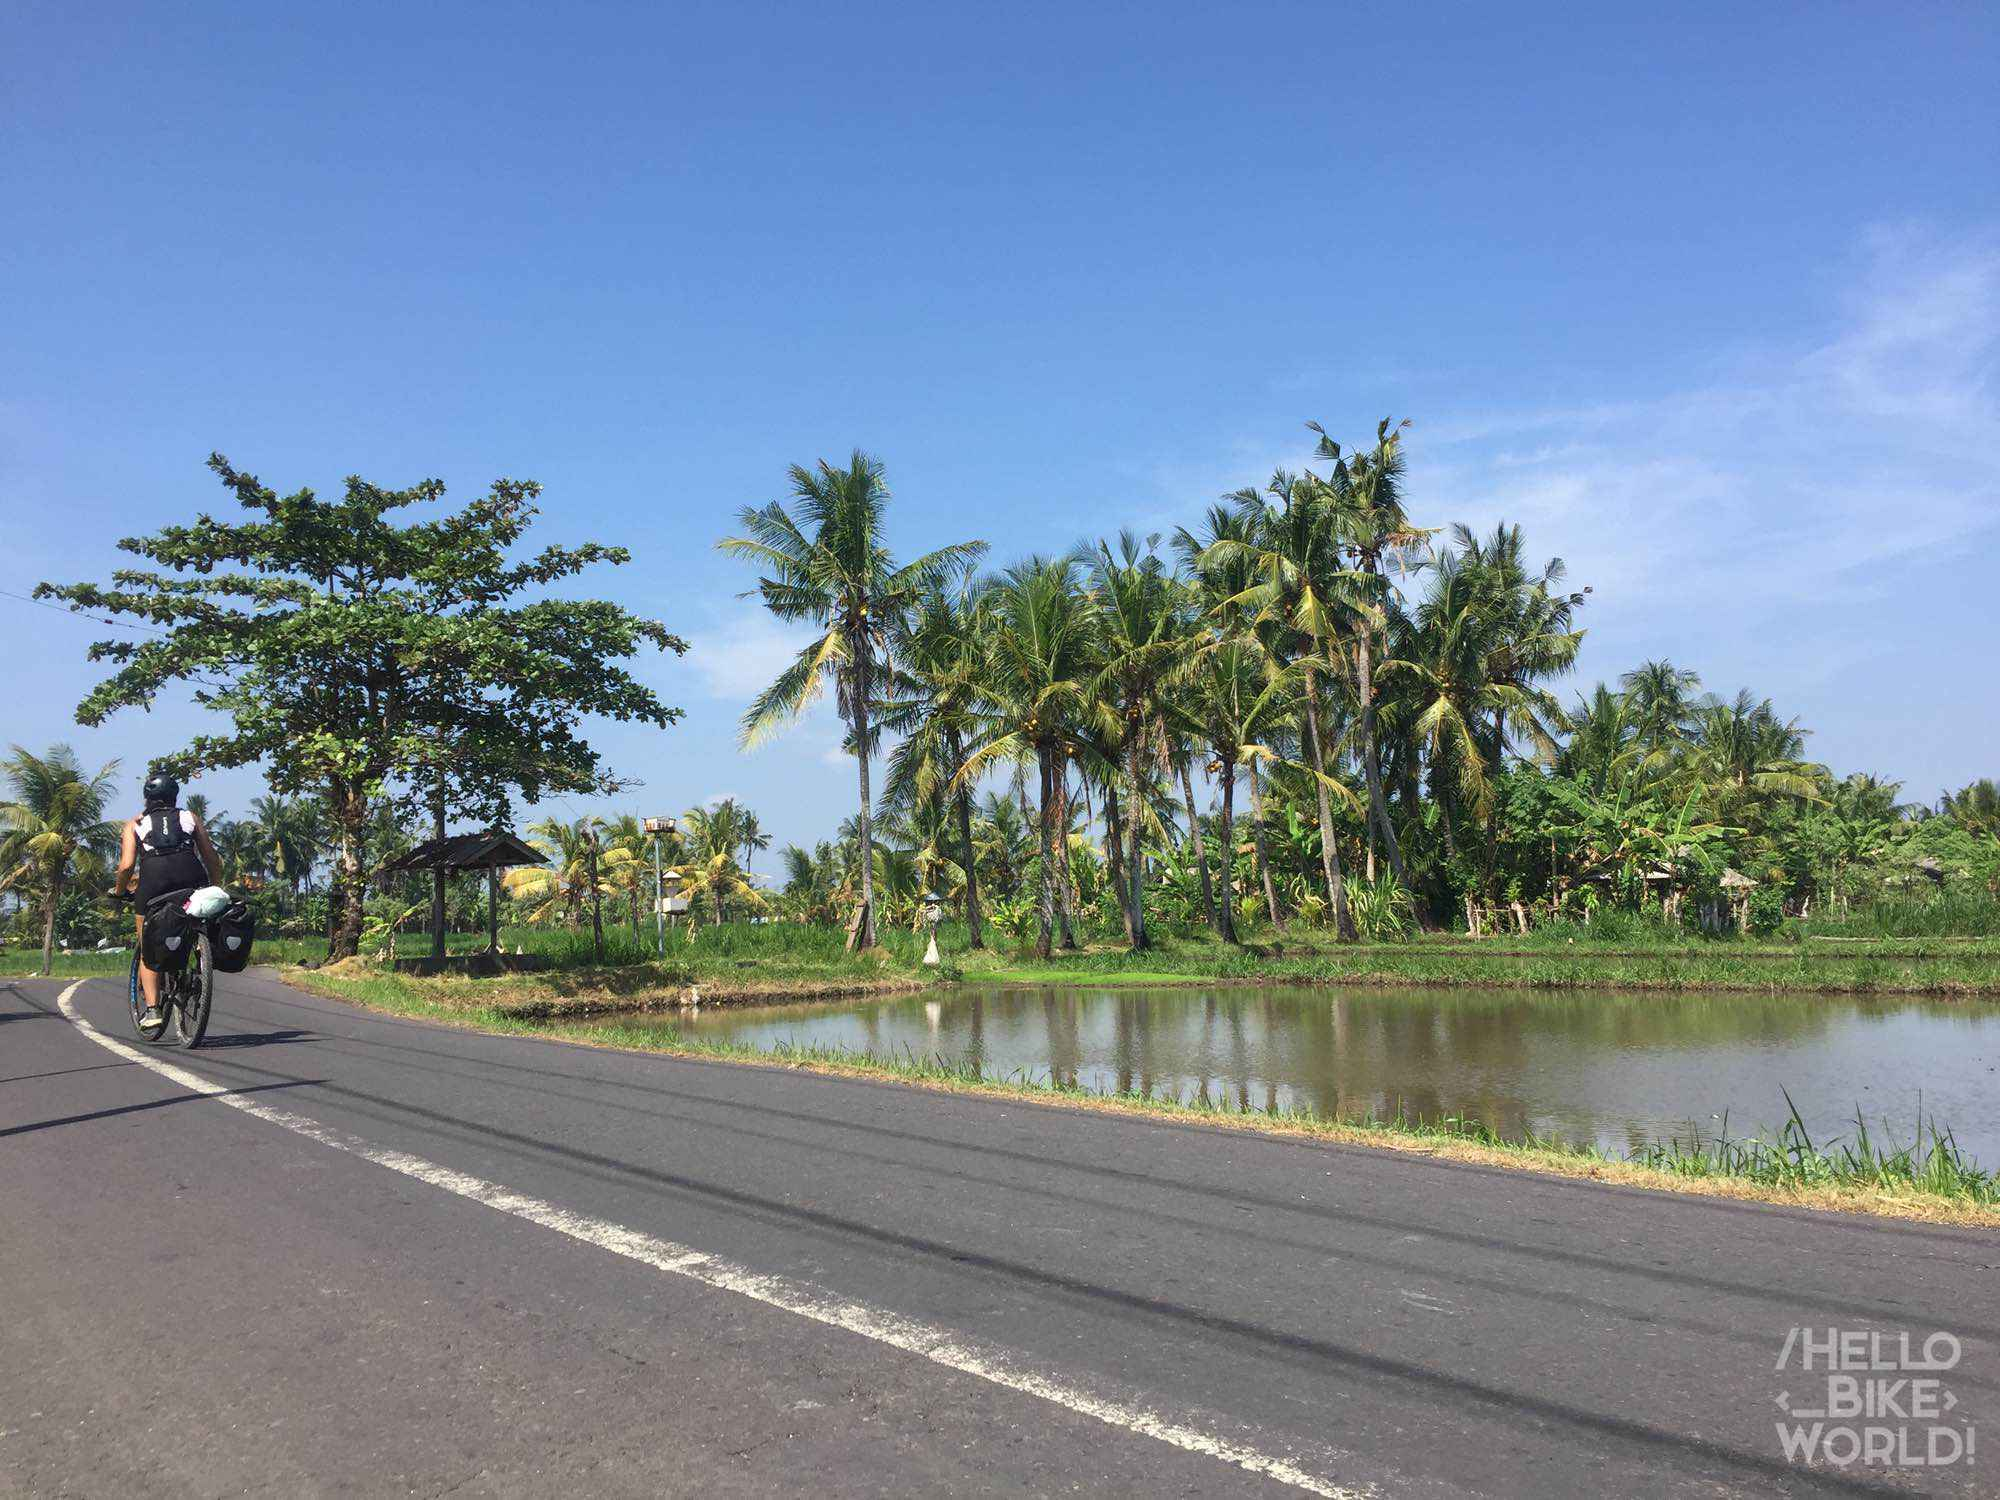 In the Northeast Denpasar, Nature found